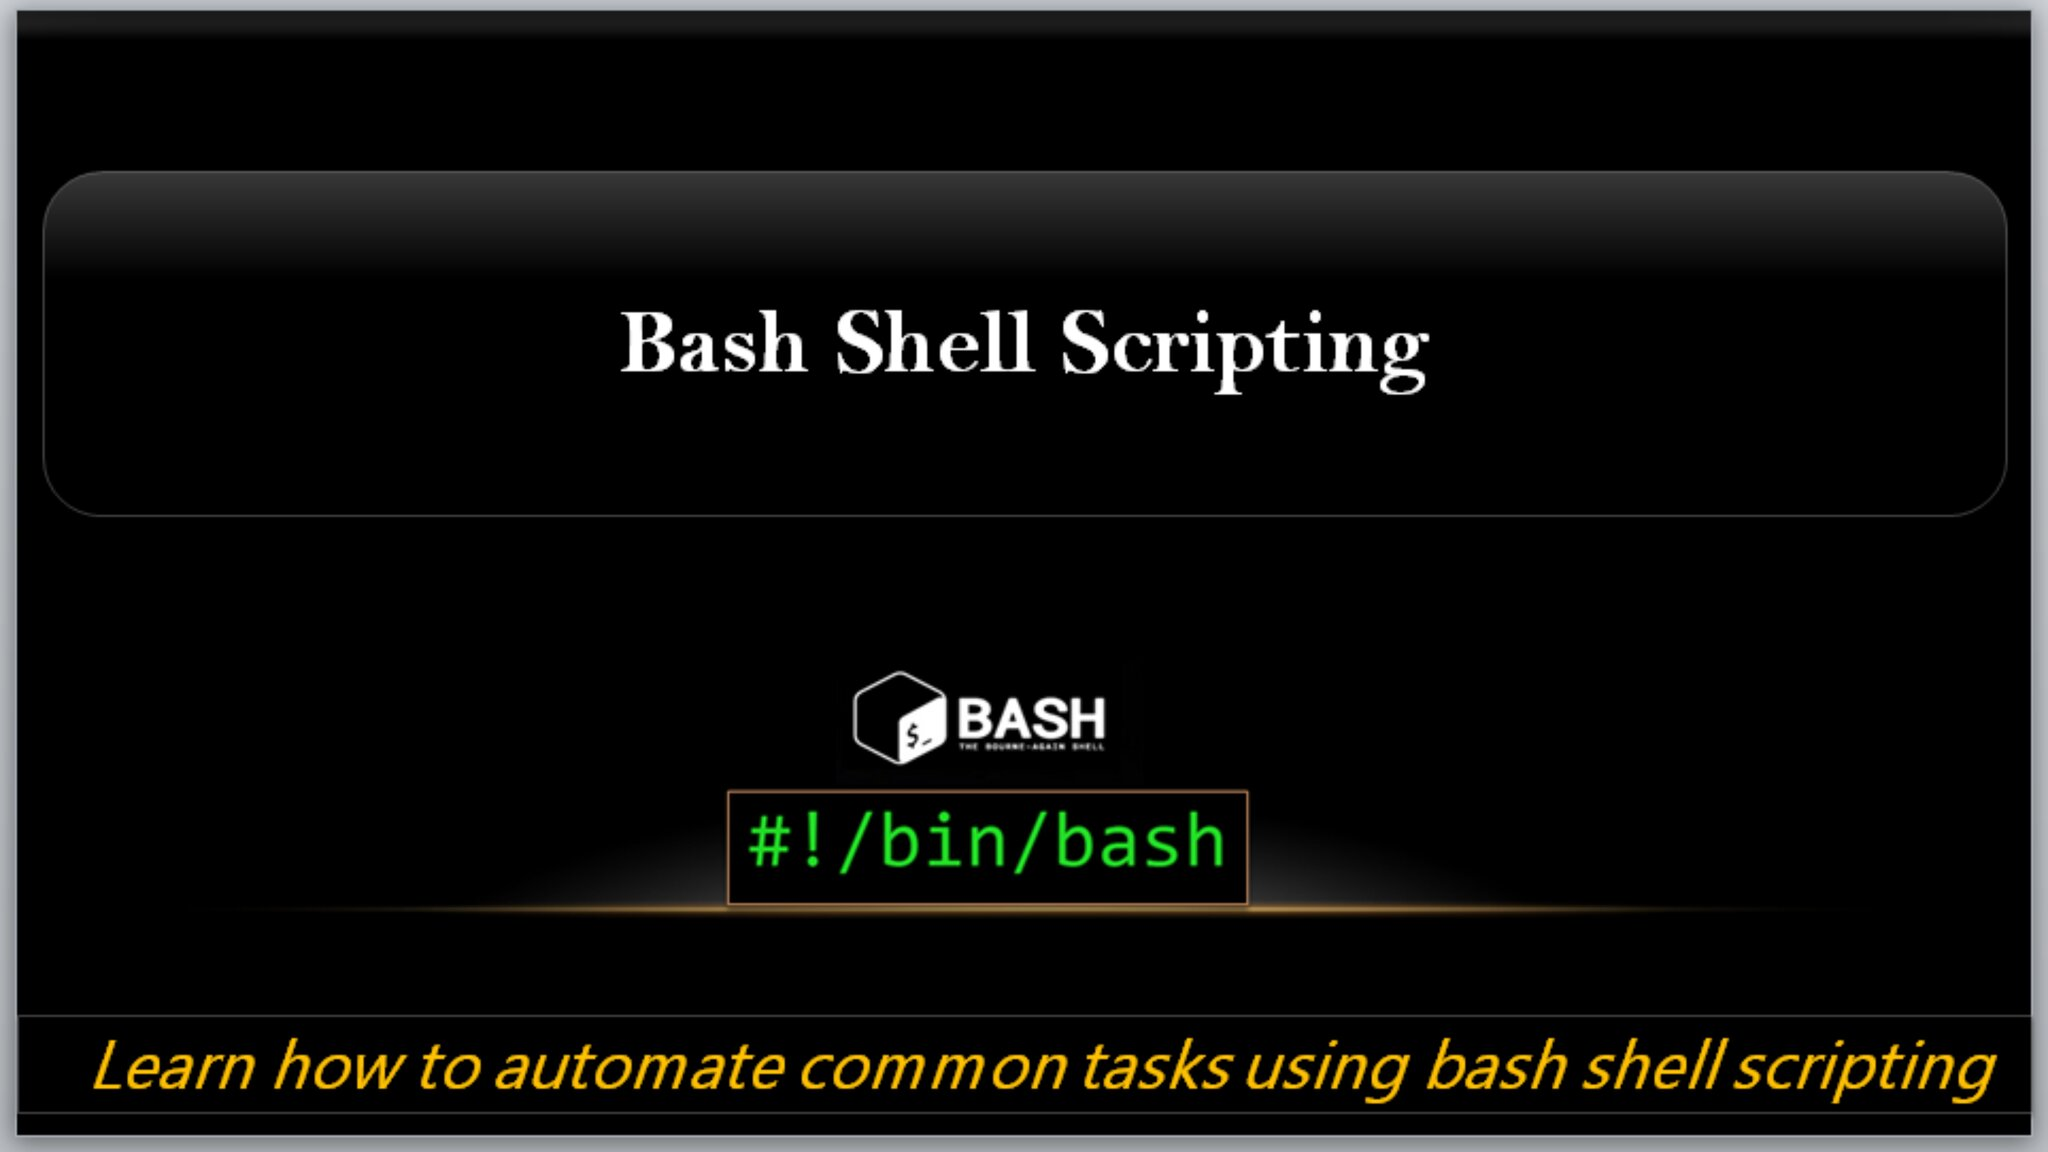 Automate repetitive  tasks with Bash Shell Scripting to save valuable